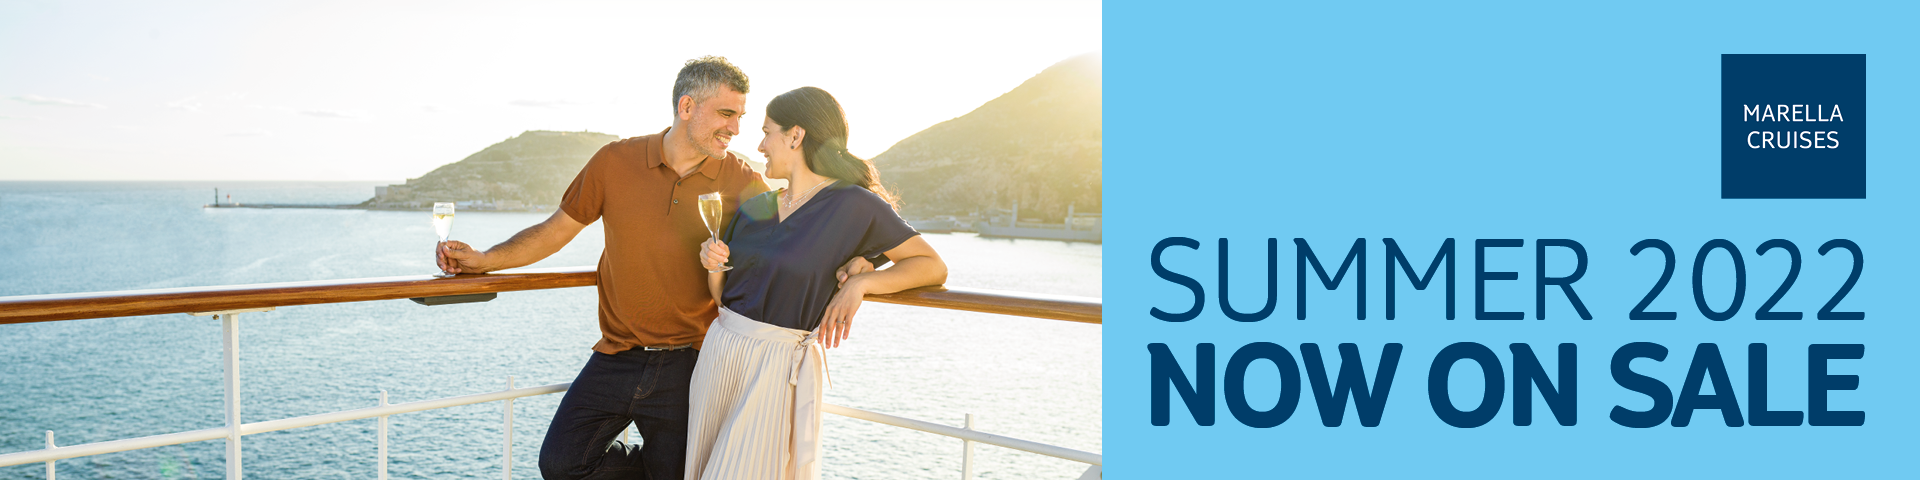 Marella Cruises Summer 2022 Now On Sale